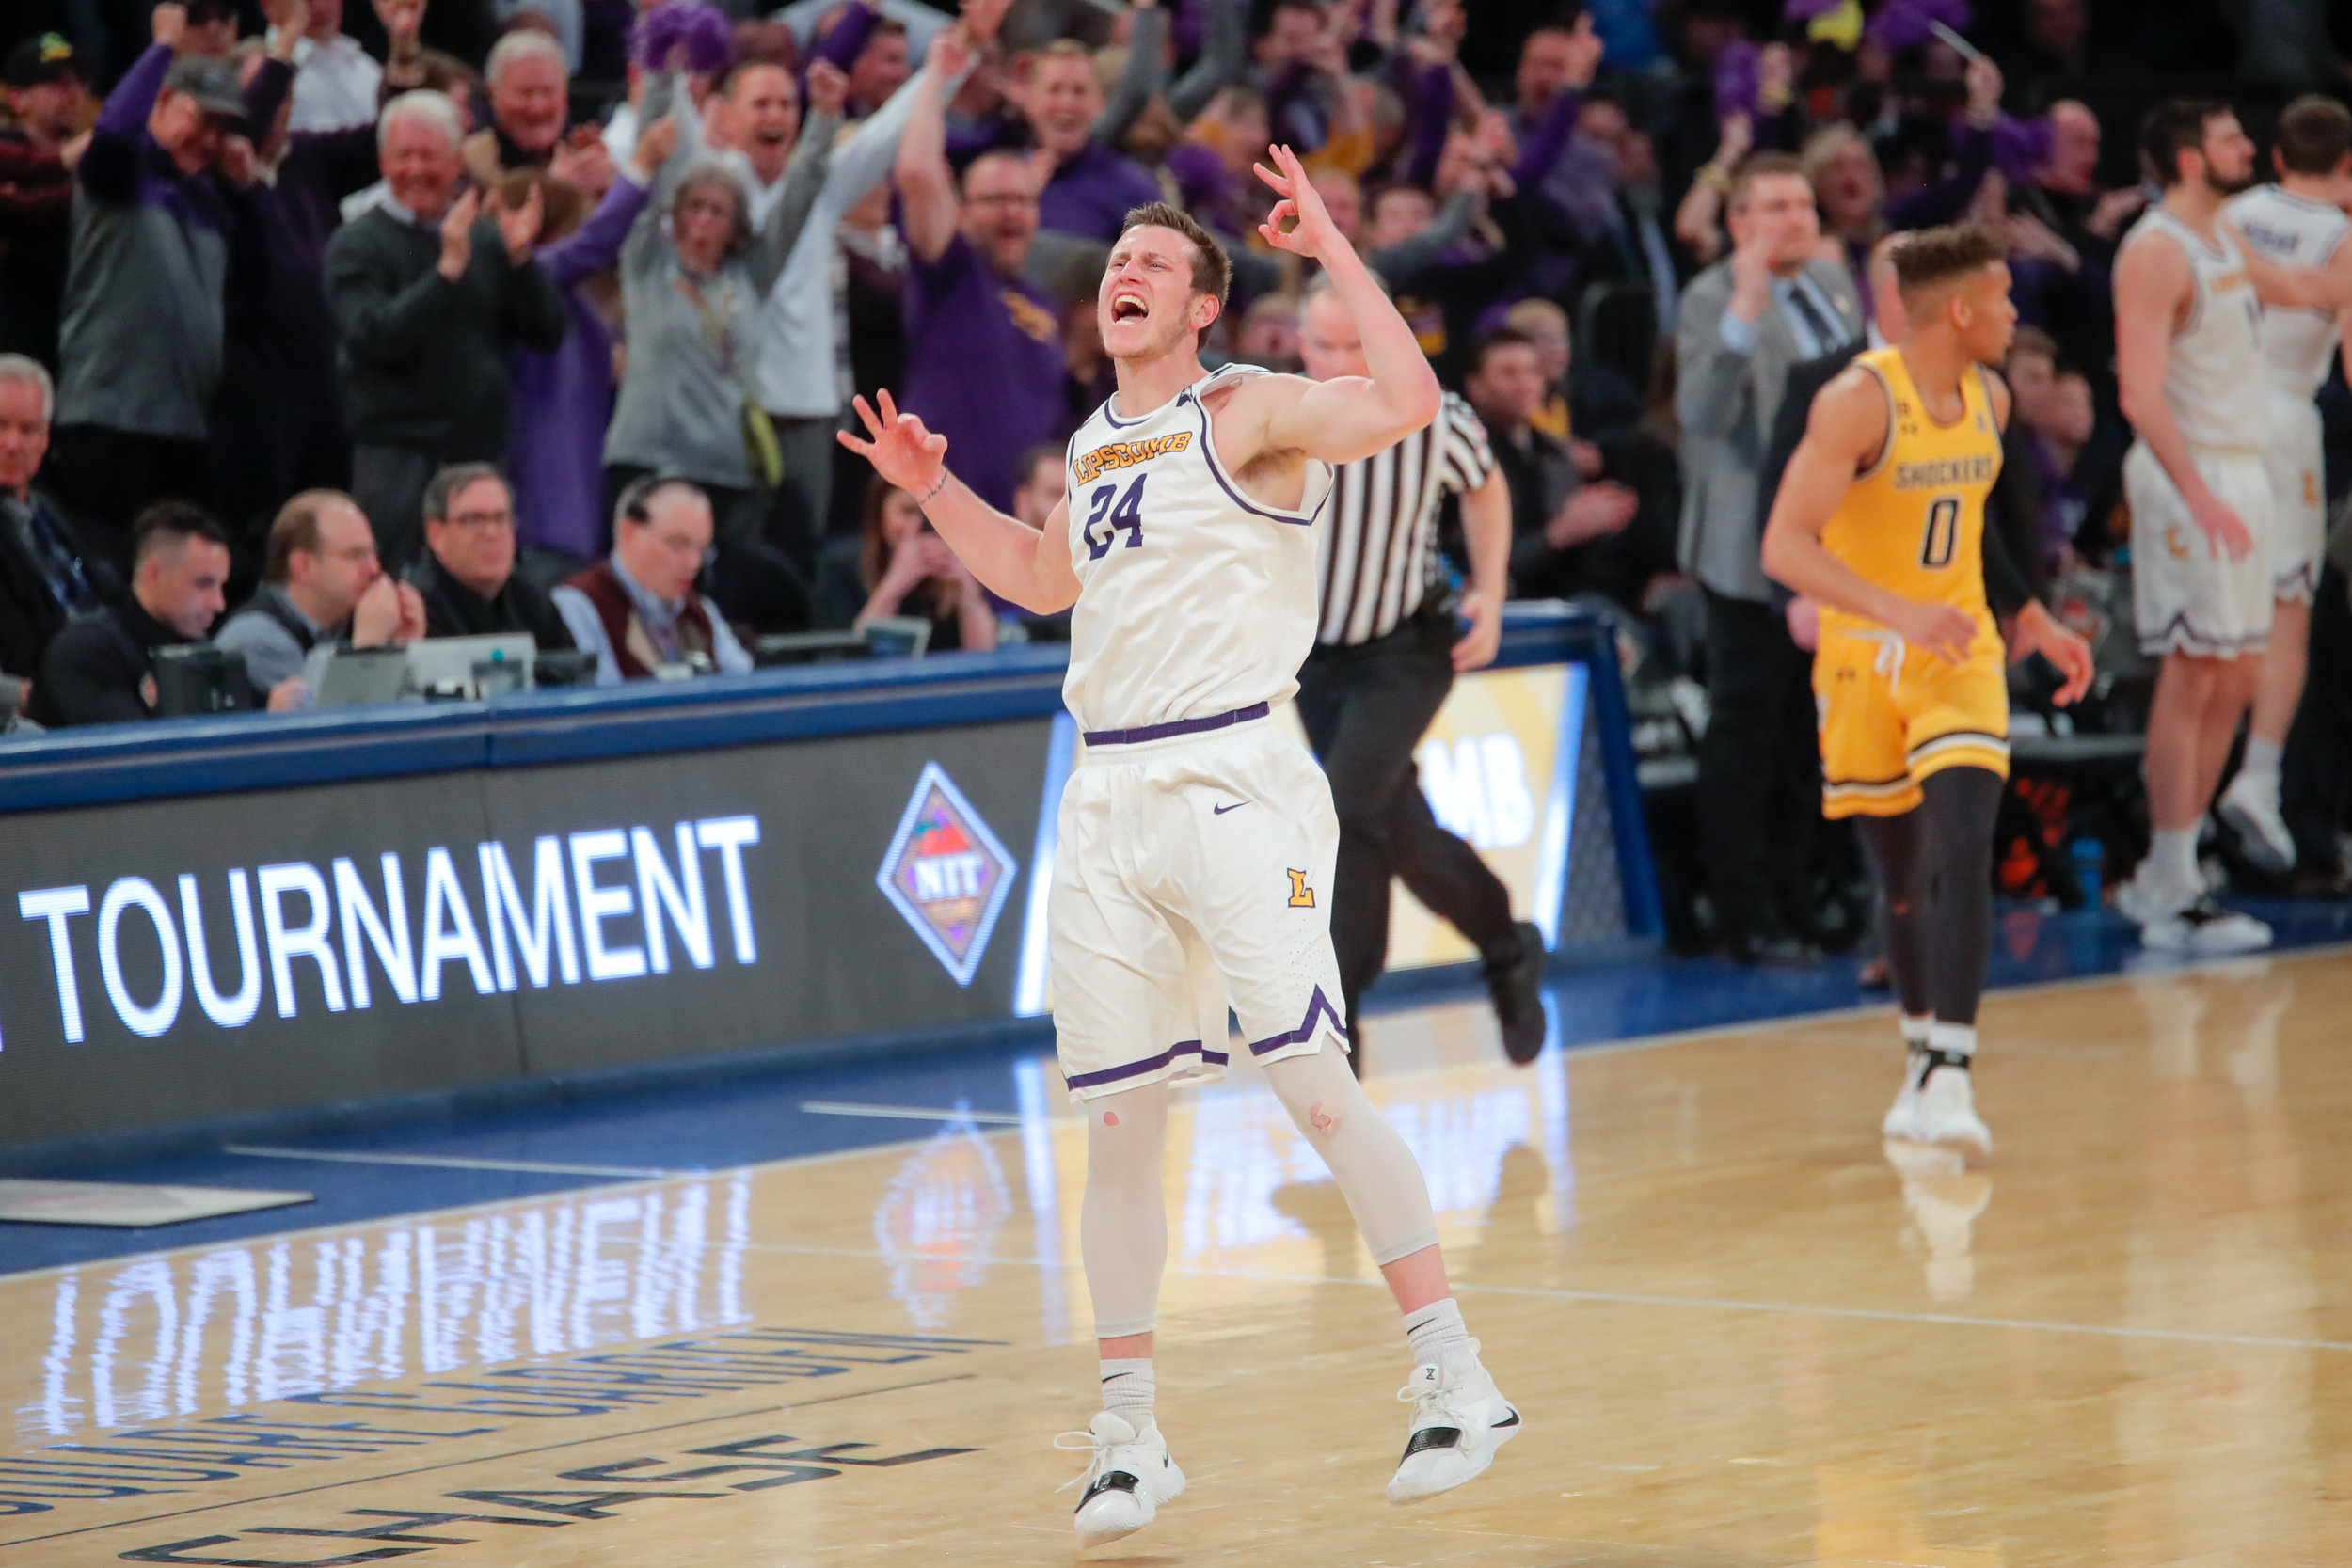 Lipscomb guard Garrison Mathews celebrates after making a crucial three-point shot during the second half of the game on April 2, 2019 at Madison Square Garden in New York. Mathews finished the game with 34 points. (Photo by Joseph Barringhaus/The Sunflower).